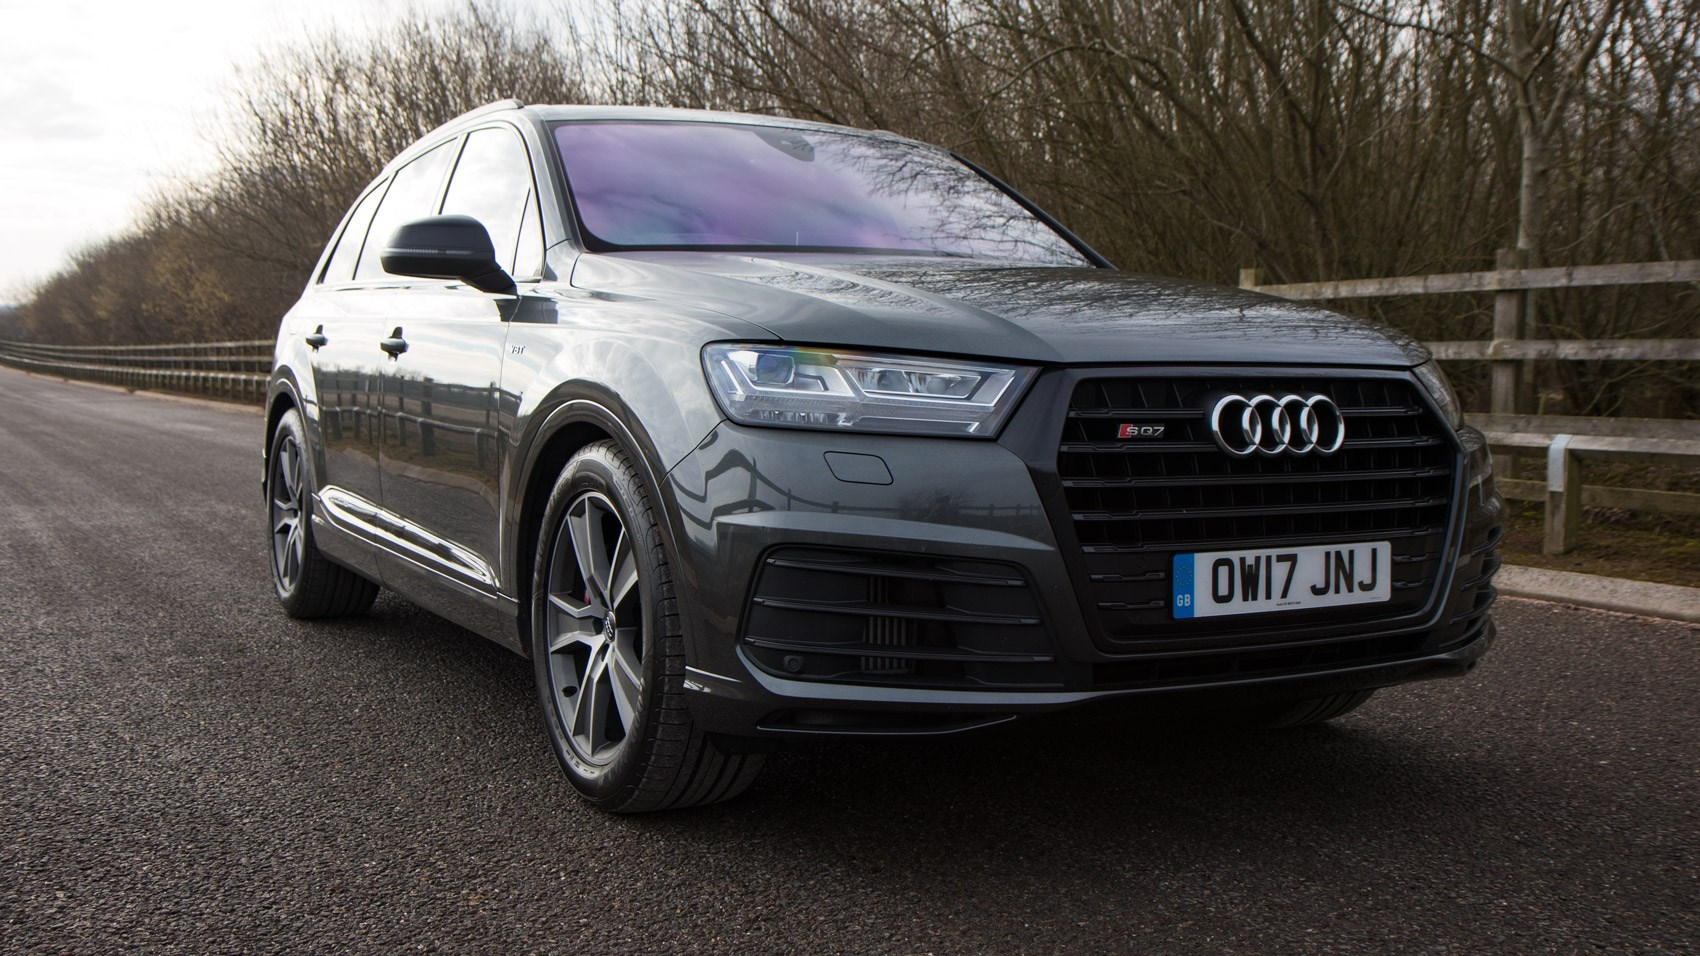 Range Rover Sport Lease >> New Audi SQ7 review: physics-bending fun with cutting edge ...